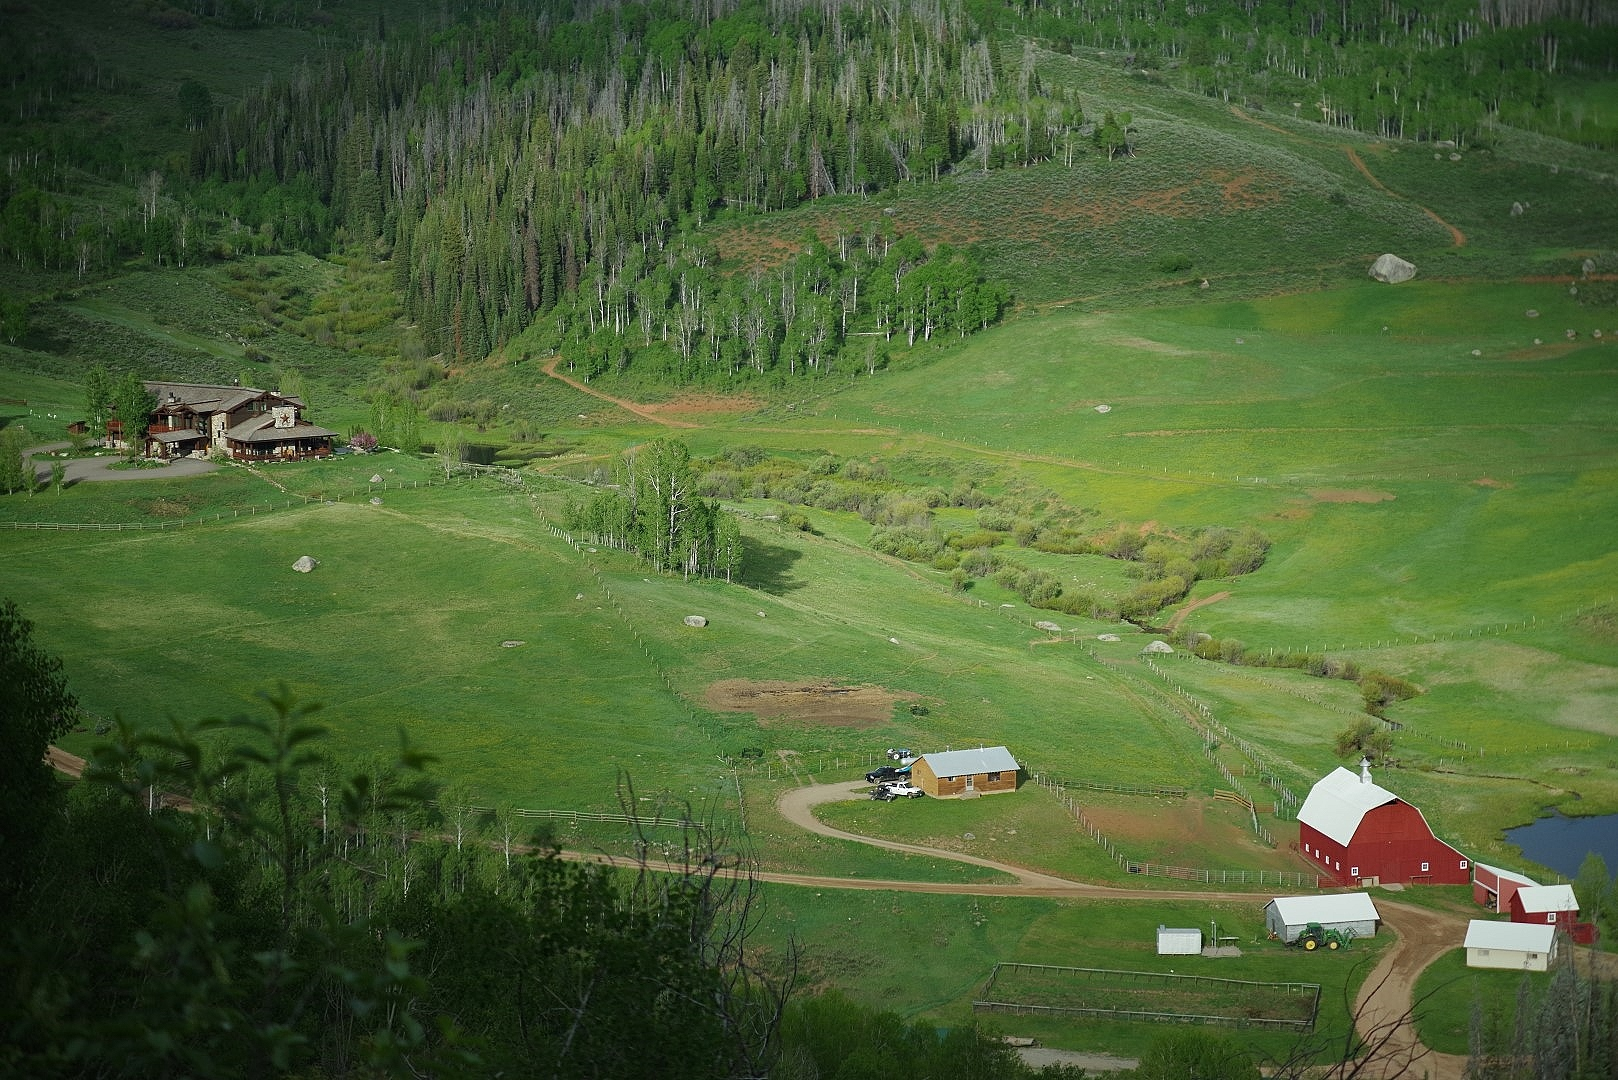 Aerial footage of Big Creek Ranch emcompassing the main house, the red barn, a corner of the pond, employee cabin and shop buildings.